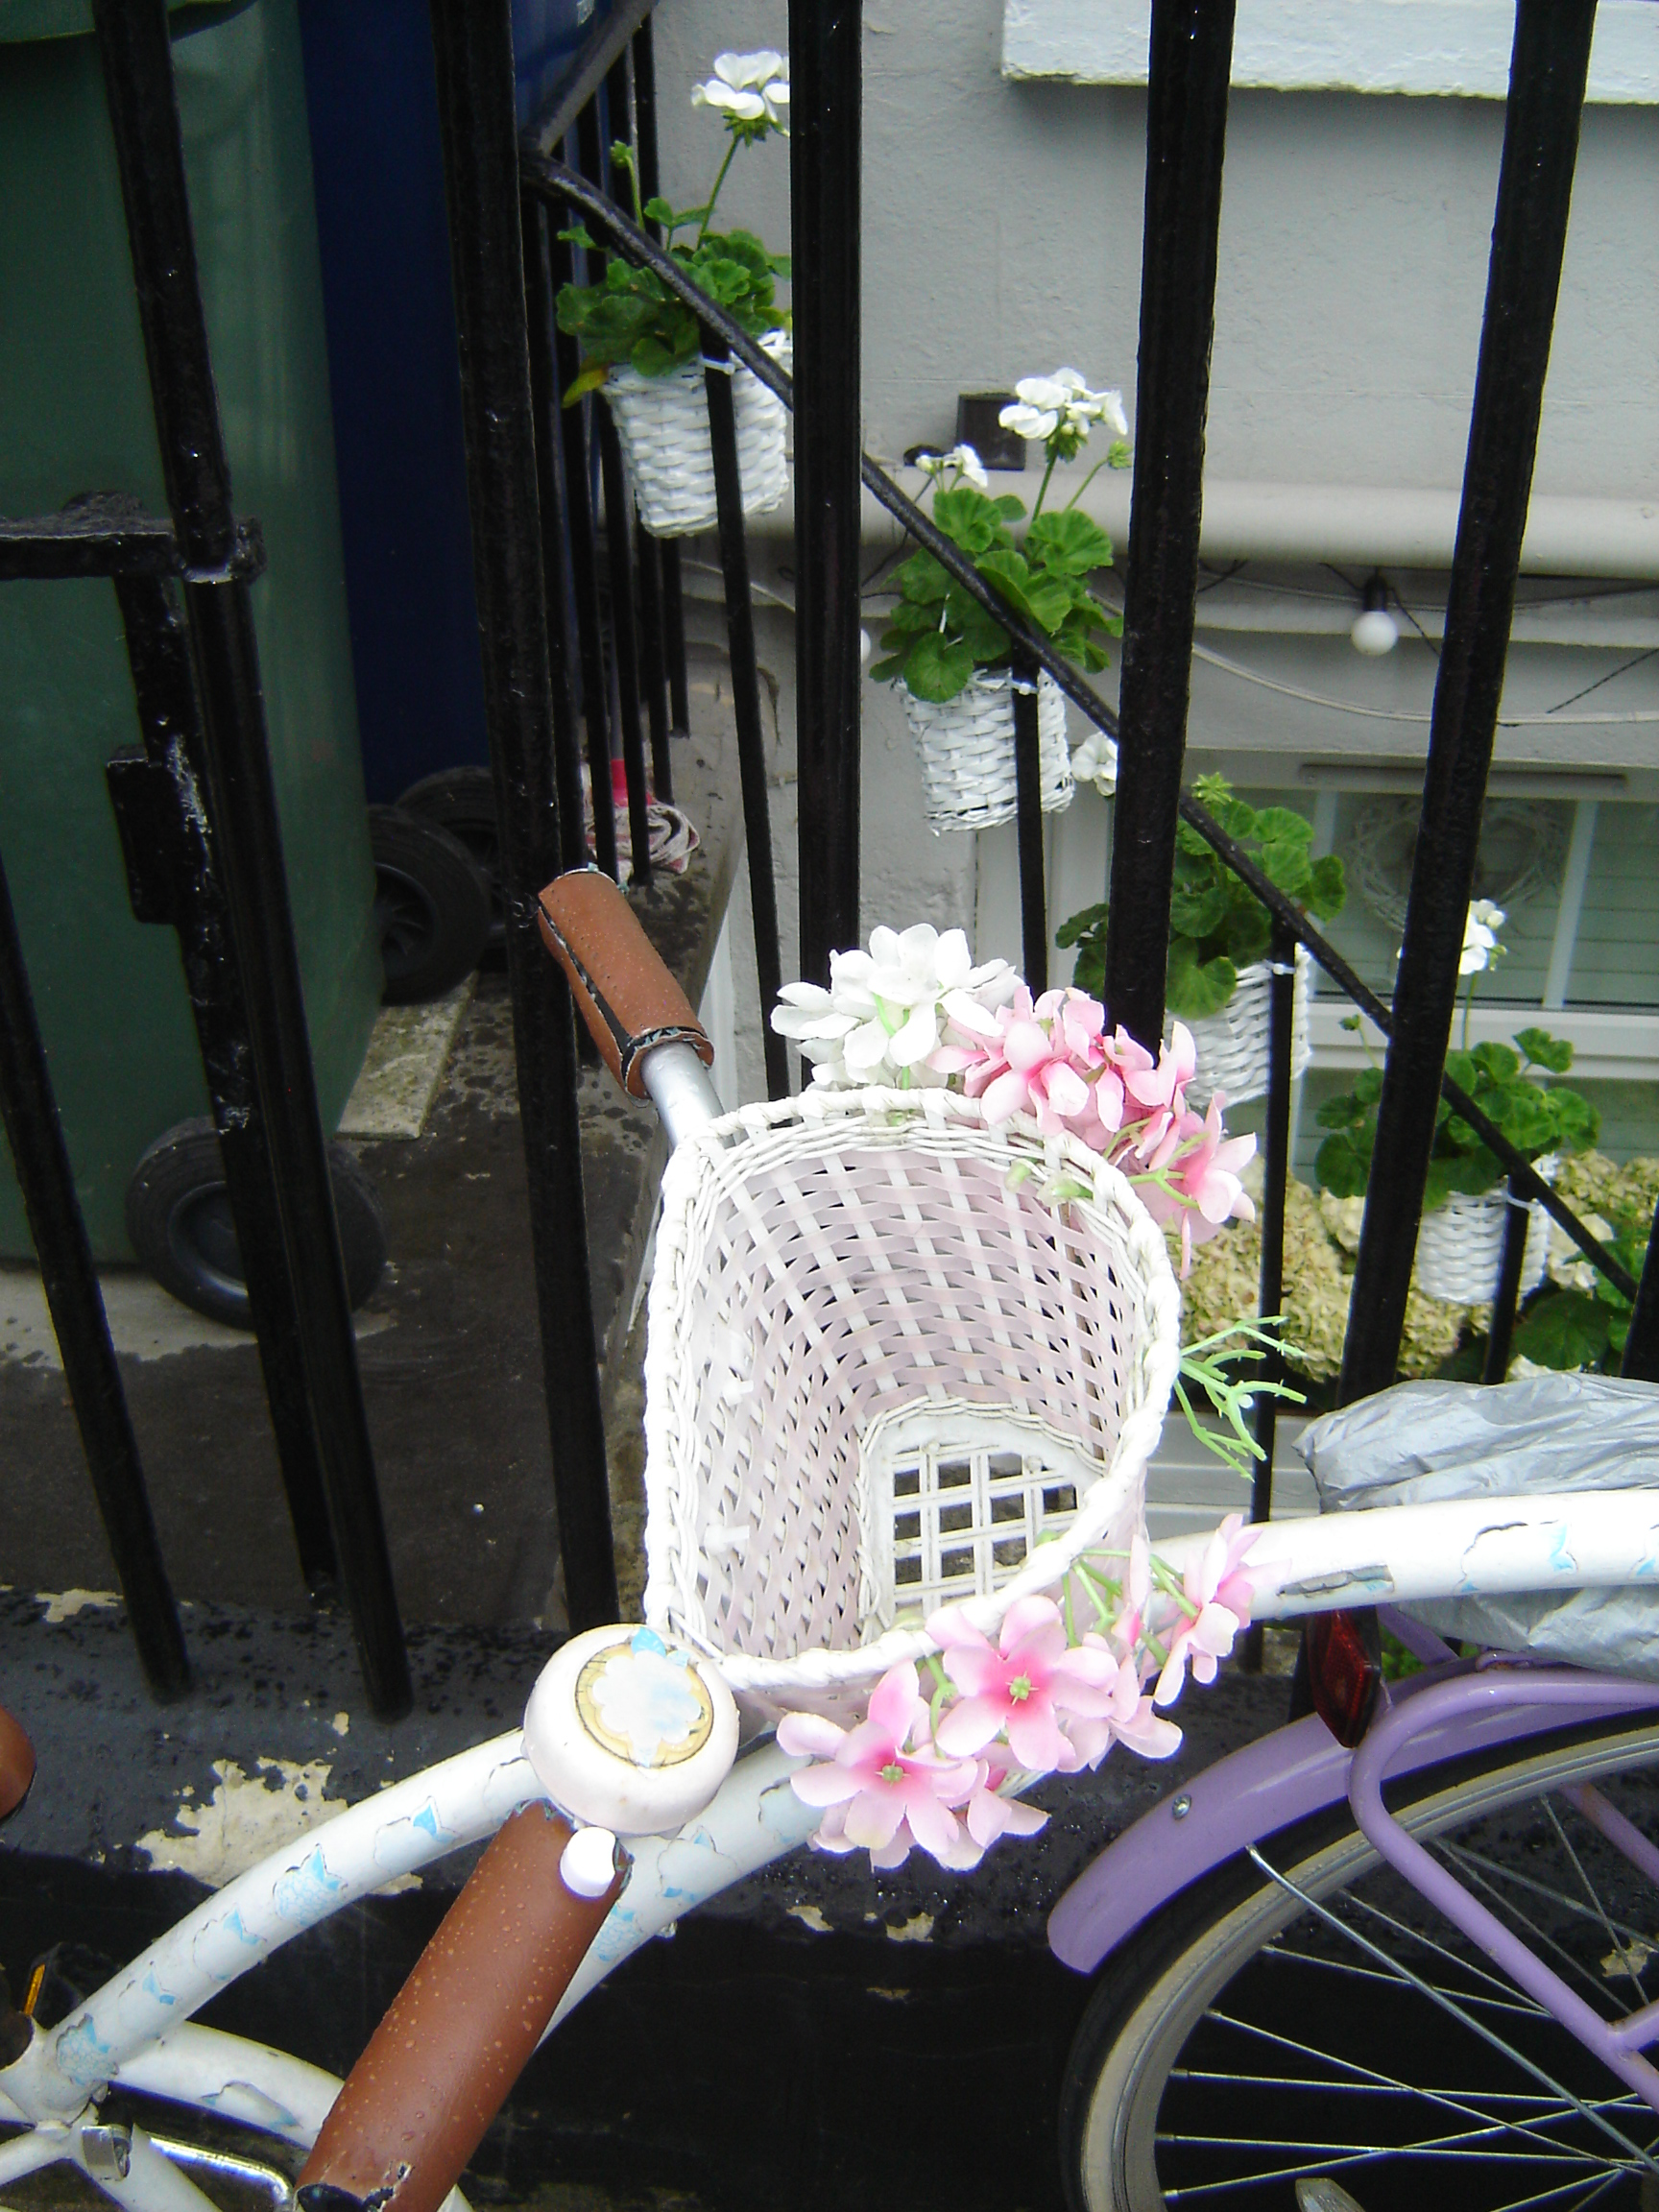 A bicycle basket decorated with pink plastic flowers